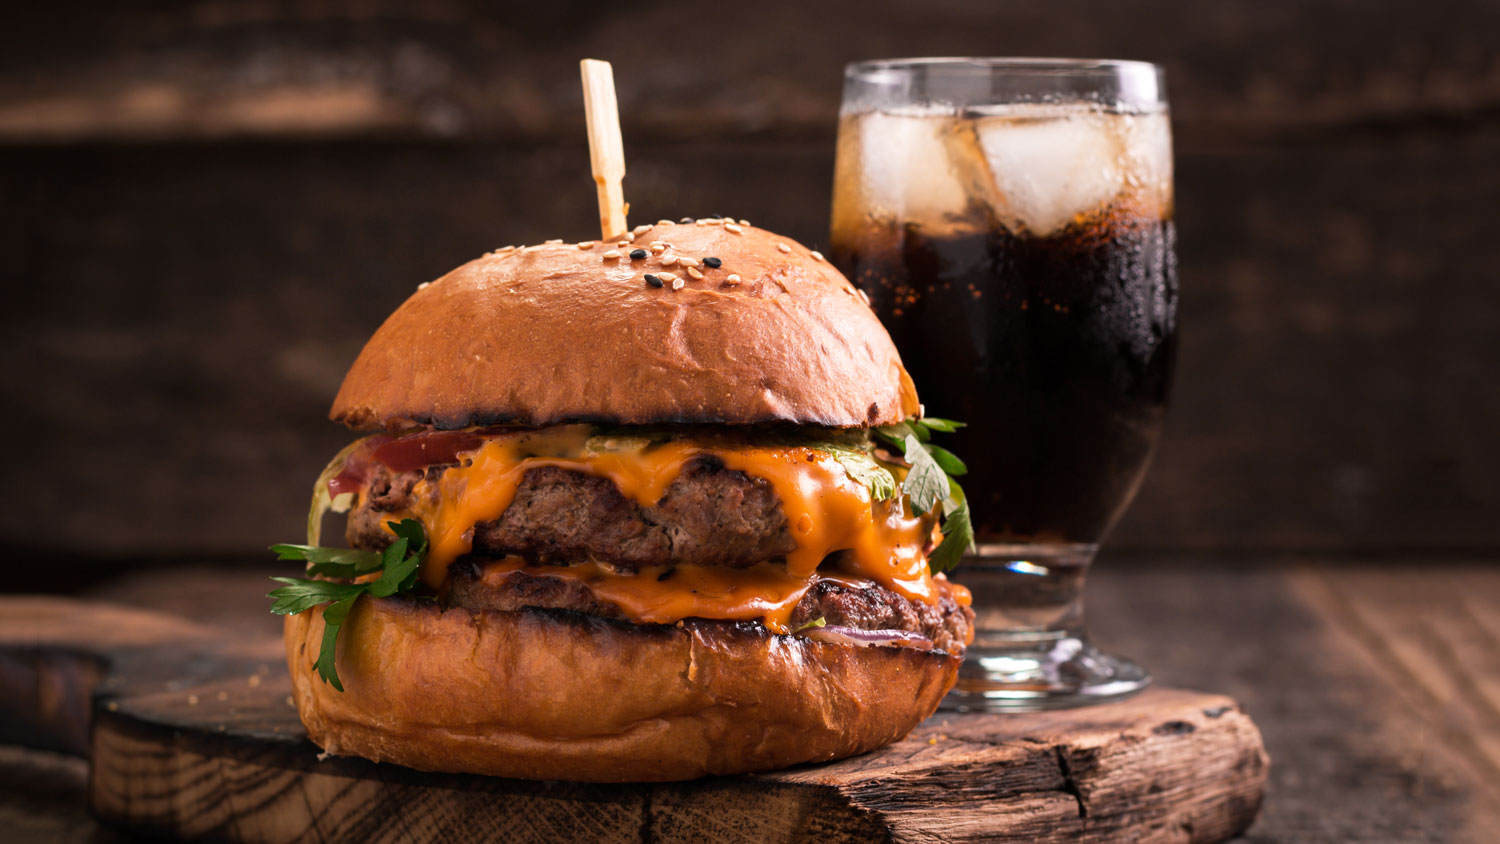 soda pairings burger and fries with soda